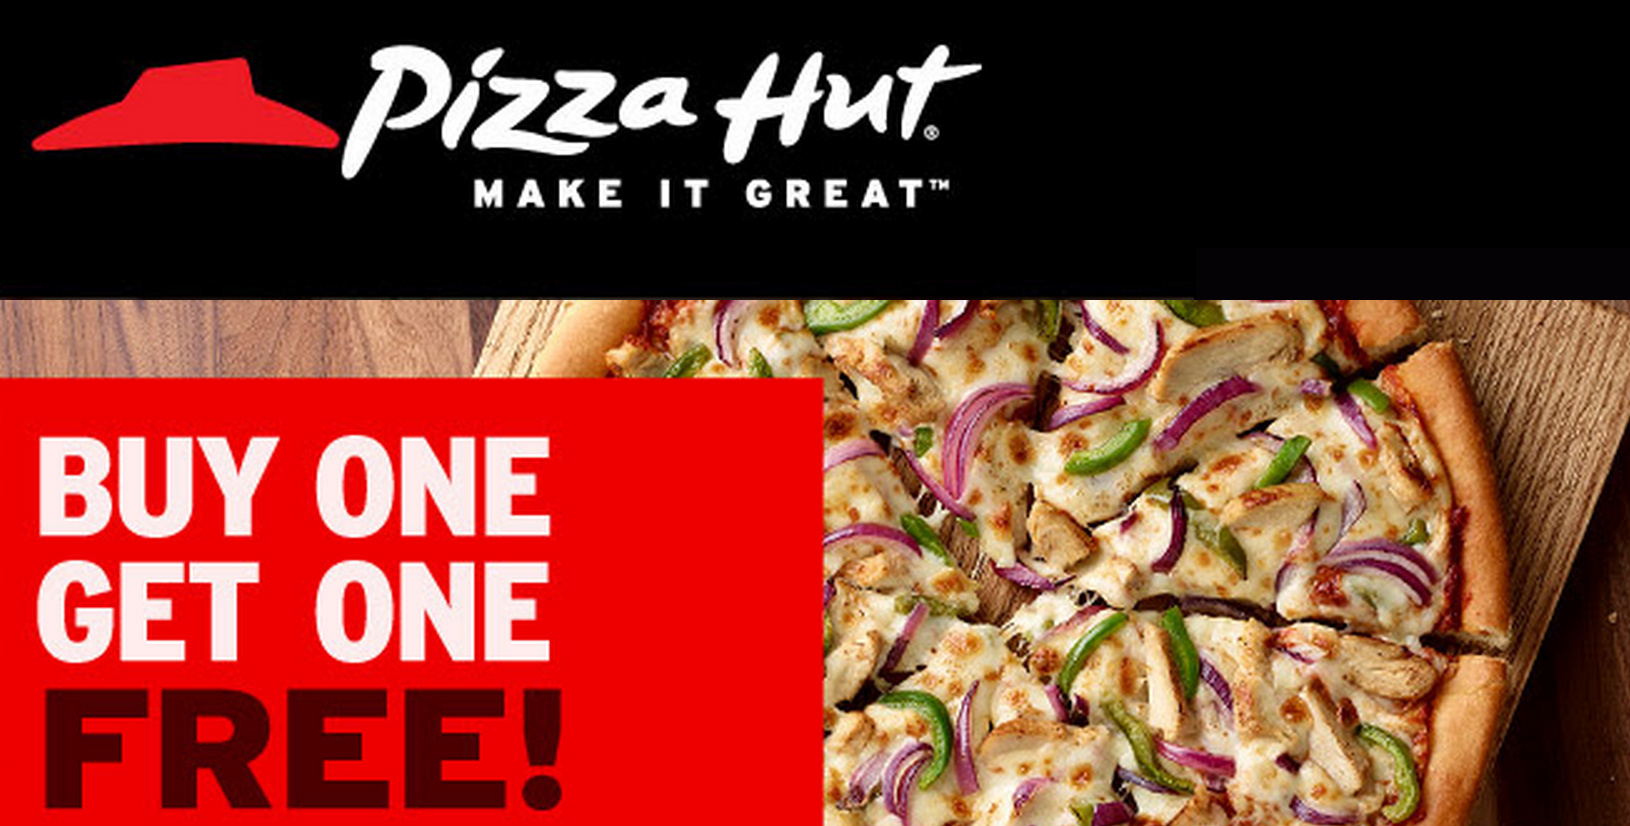 Pizza Hut is without a doubt the most popular pizza restaurant chain on the planet. Its signature stuffed crust pizza is an all-time favorite not only in the US but around the world.